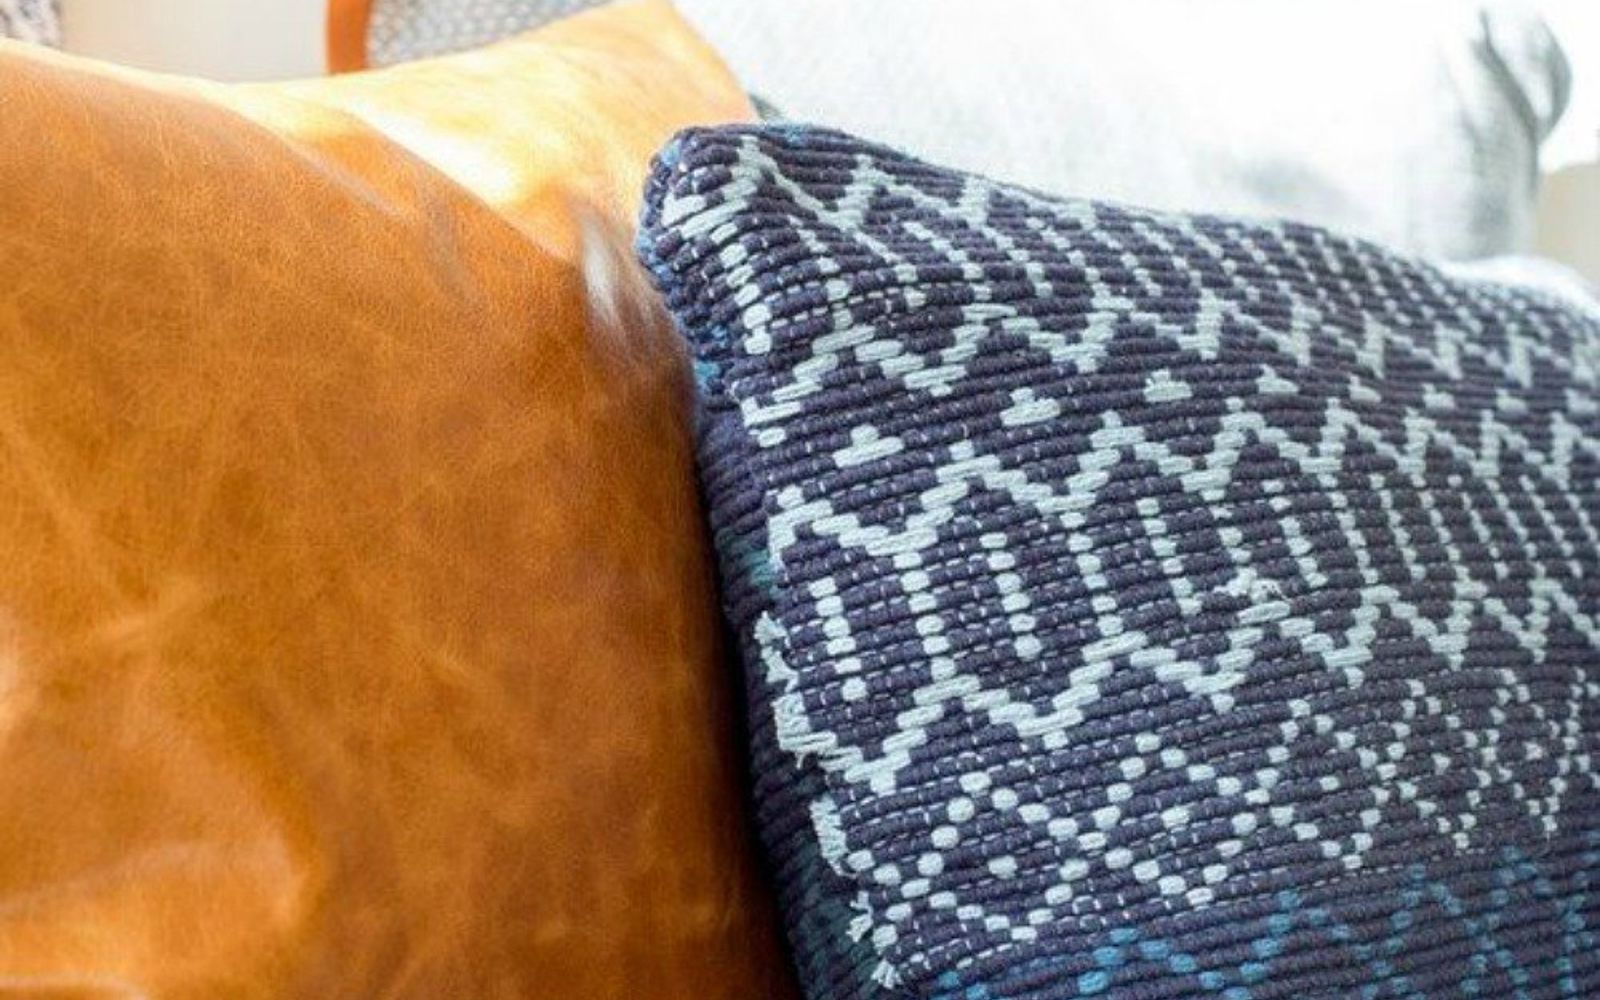 s transform dollar store rugs with these 11 stunning ideas, reupholster, Combine rugs to make gorgeous snuggle pieces